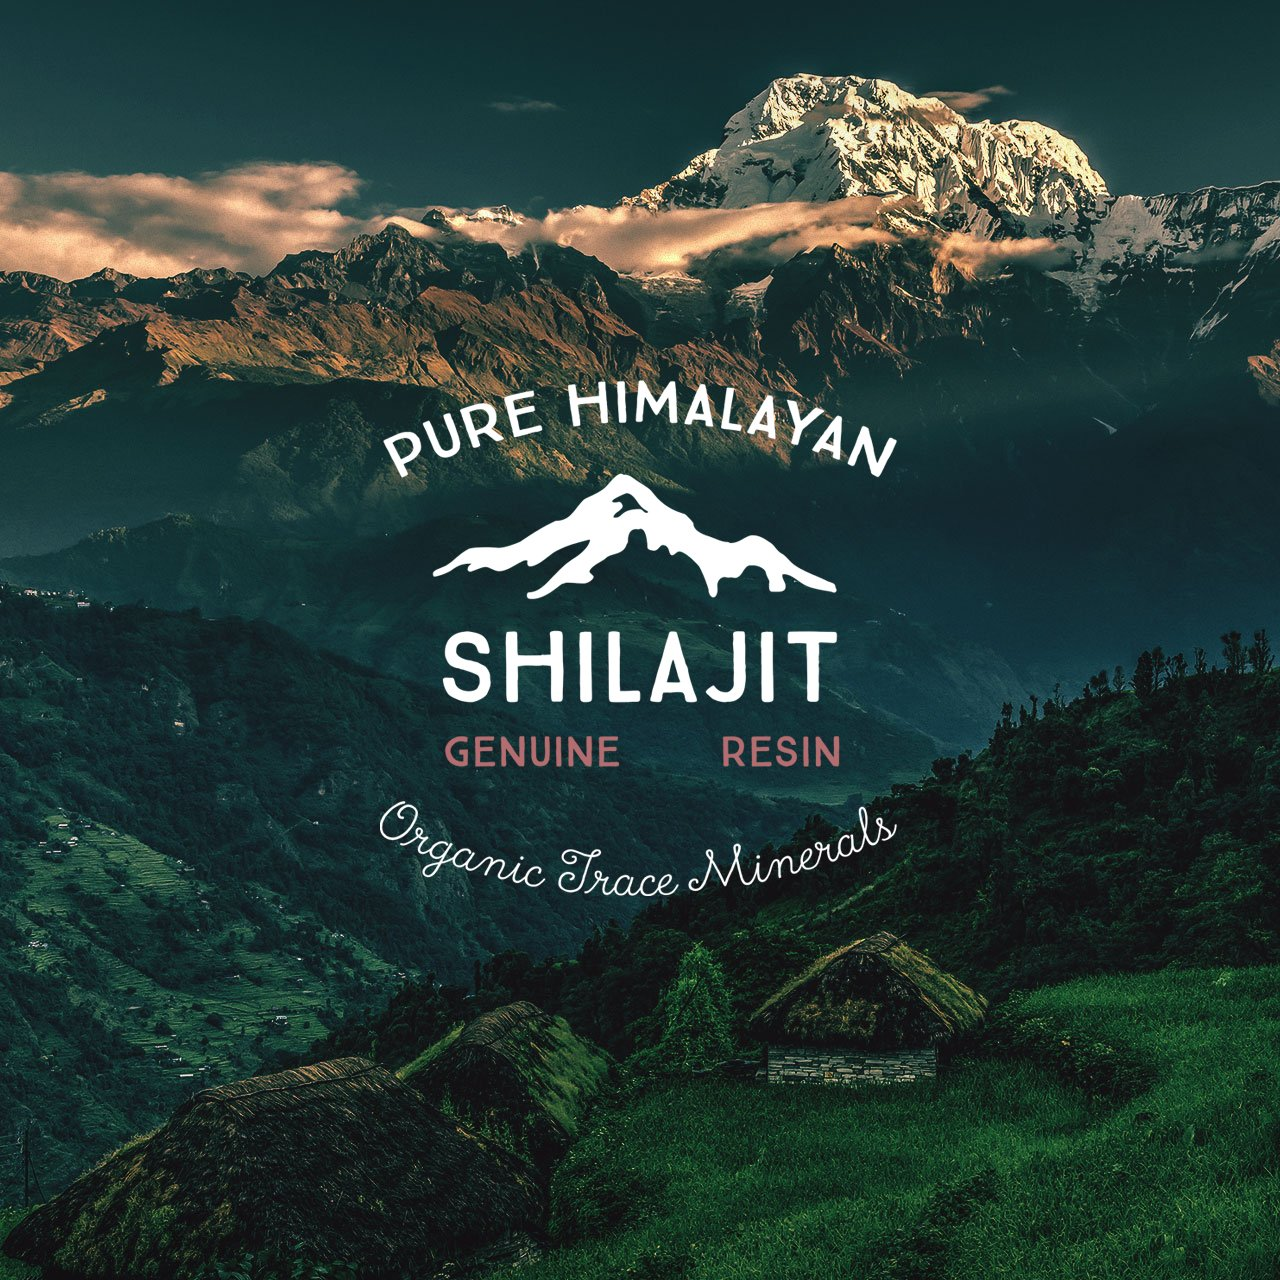 100% Pure Shilajit Resin Authentic himalayan mumijo mumiyo 20g WITHOUT DILUTION